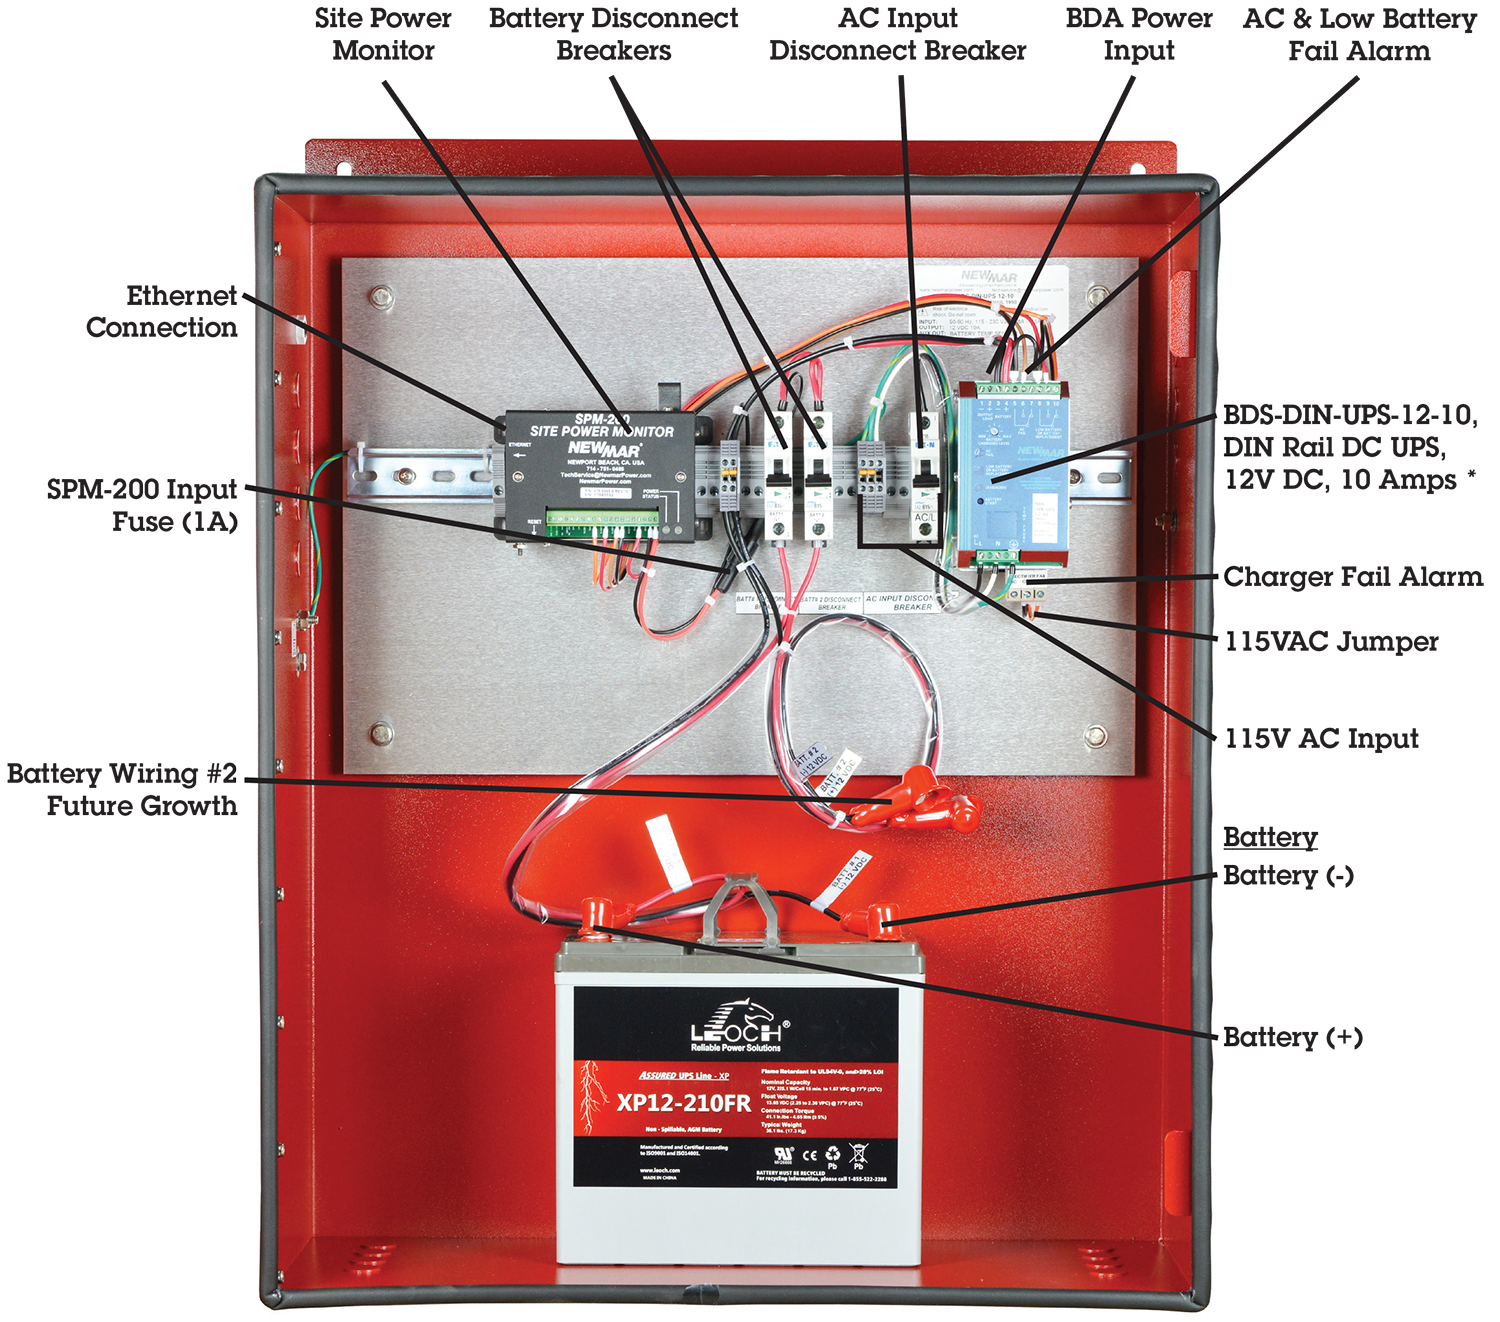 12v 100ah battery charger circuit diagram 1972 chevy chevelle wiring dc power enclosures for nfpa 1221 in building standards